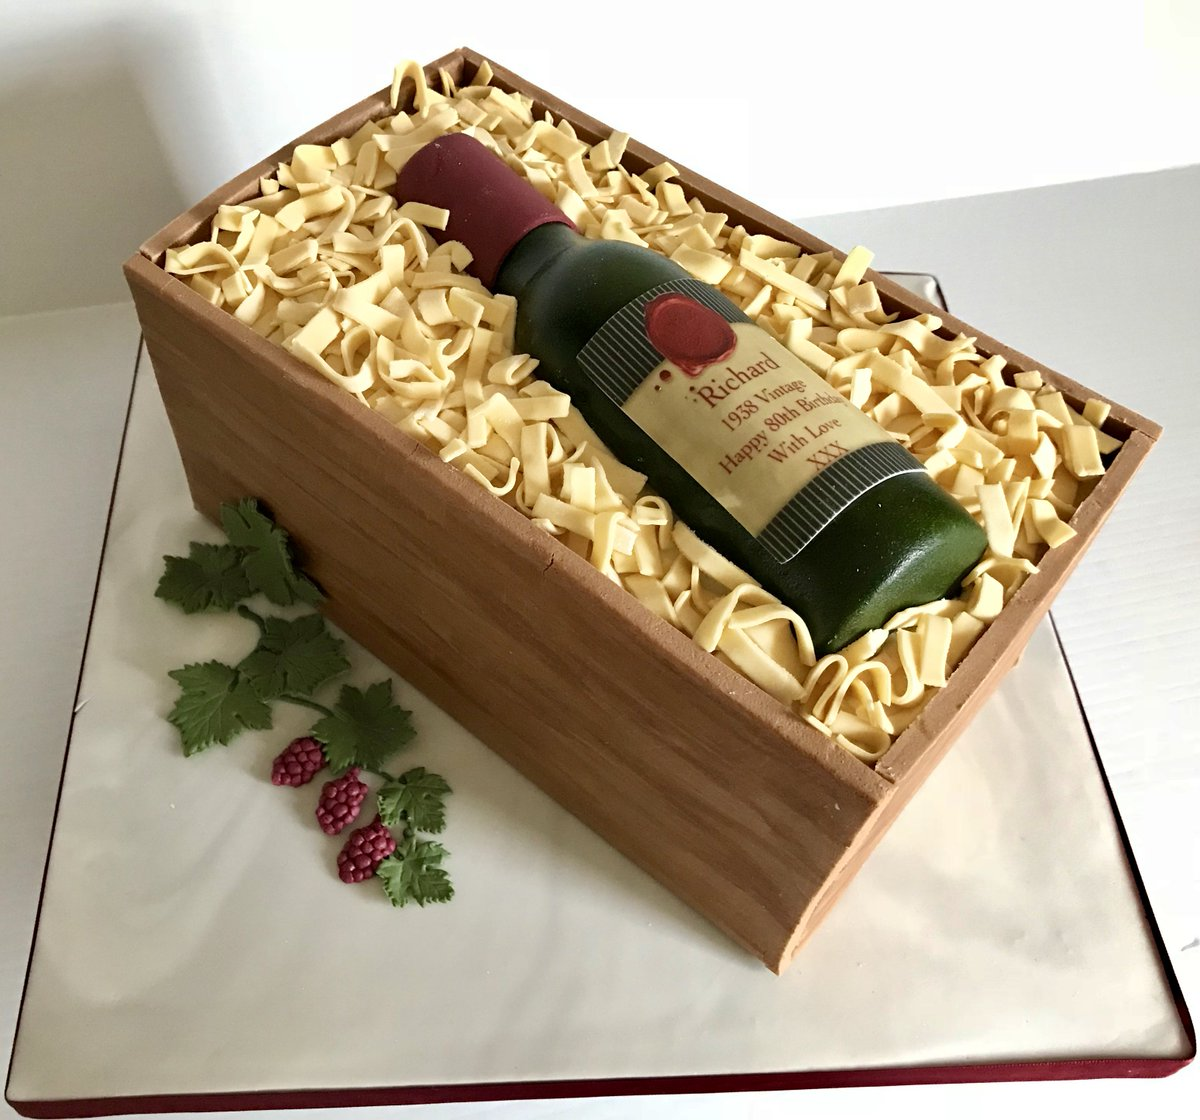 Sharon Lord Cakes On Twitter A Couple Of Birthday This Week Sugar Wine Bottle And Figure